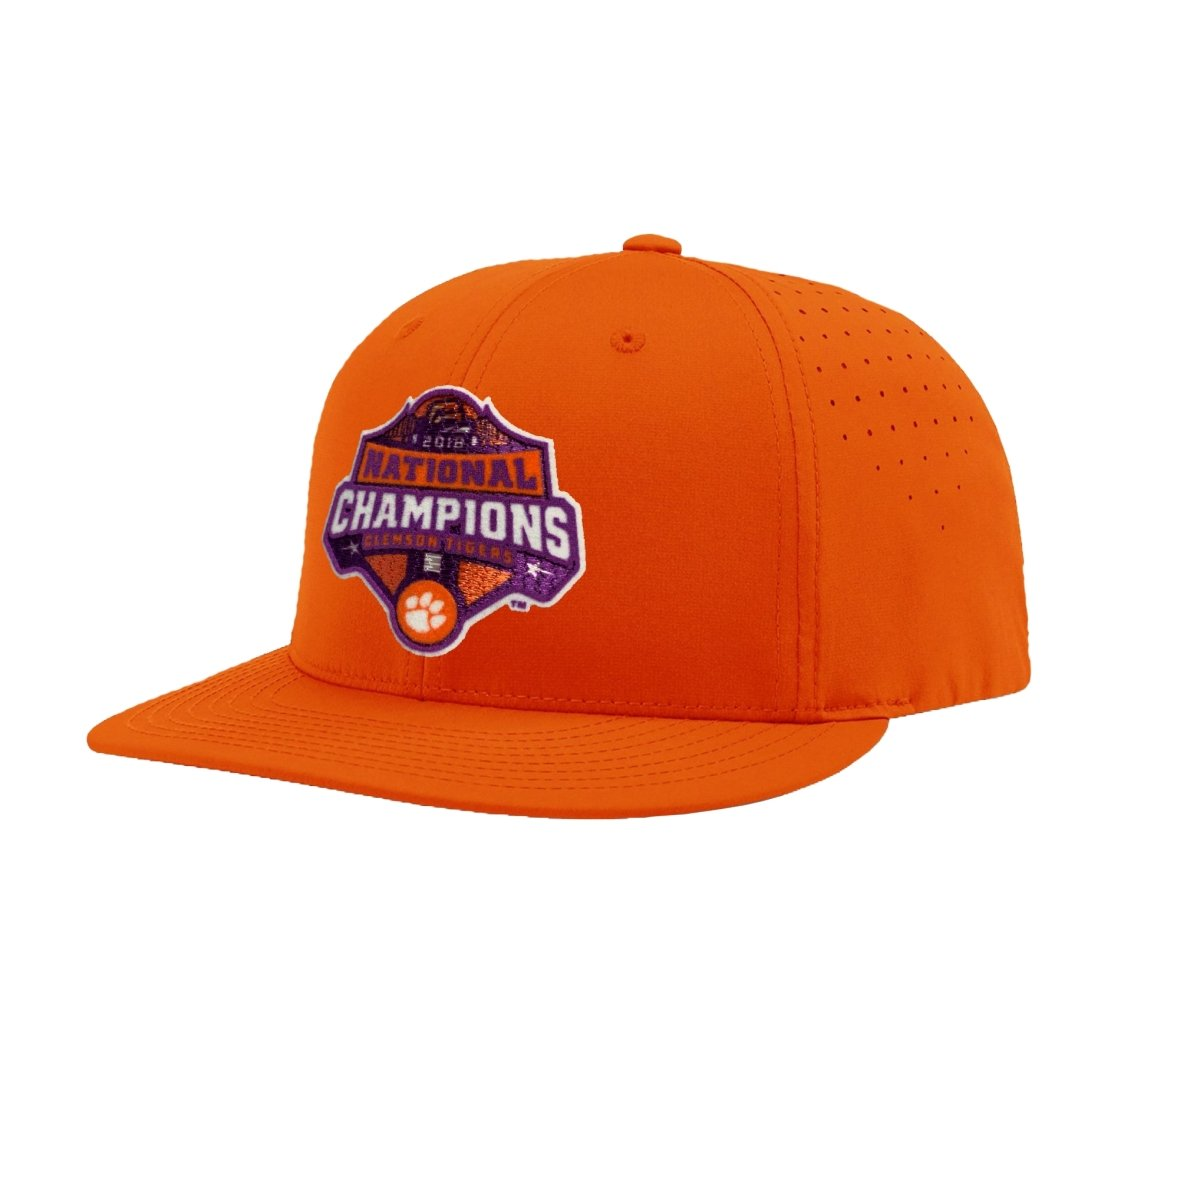 2018 National Champions Logo Dry-fit Hat - Mr. Knickerbocker